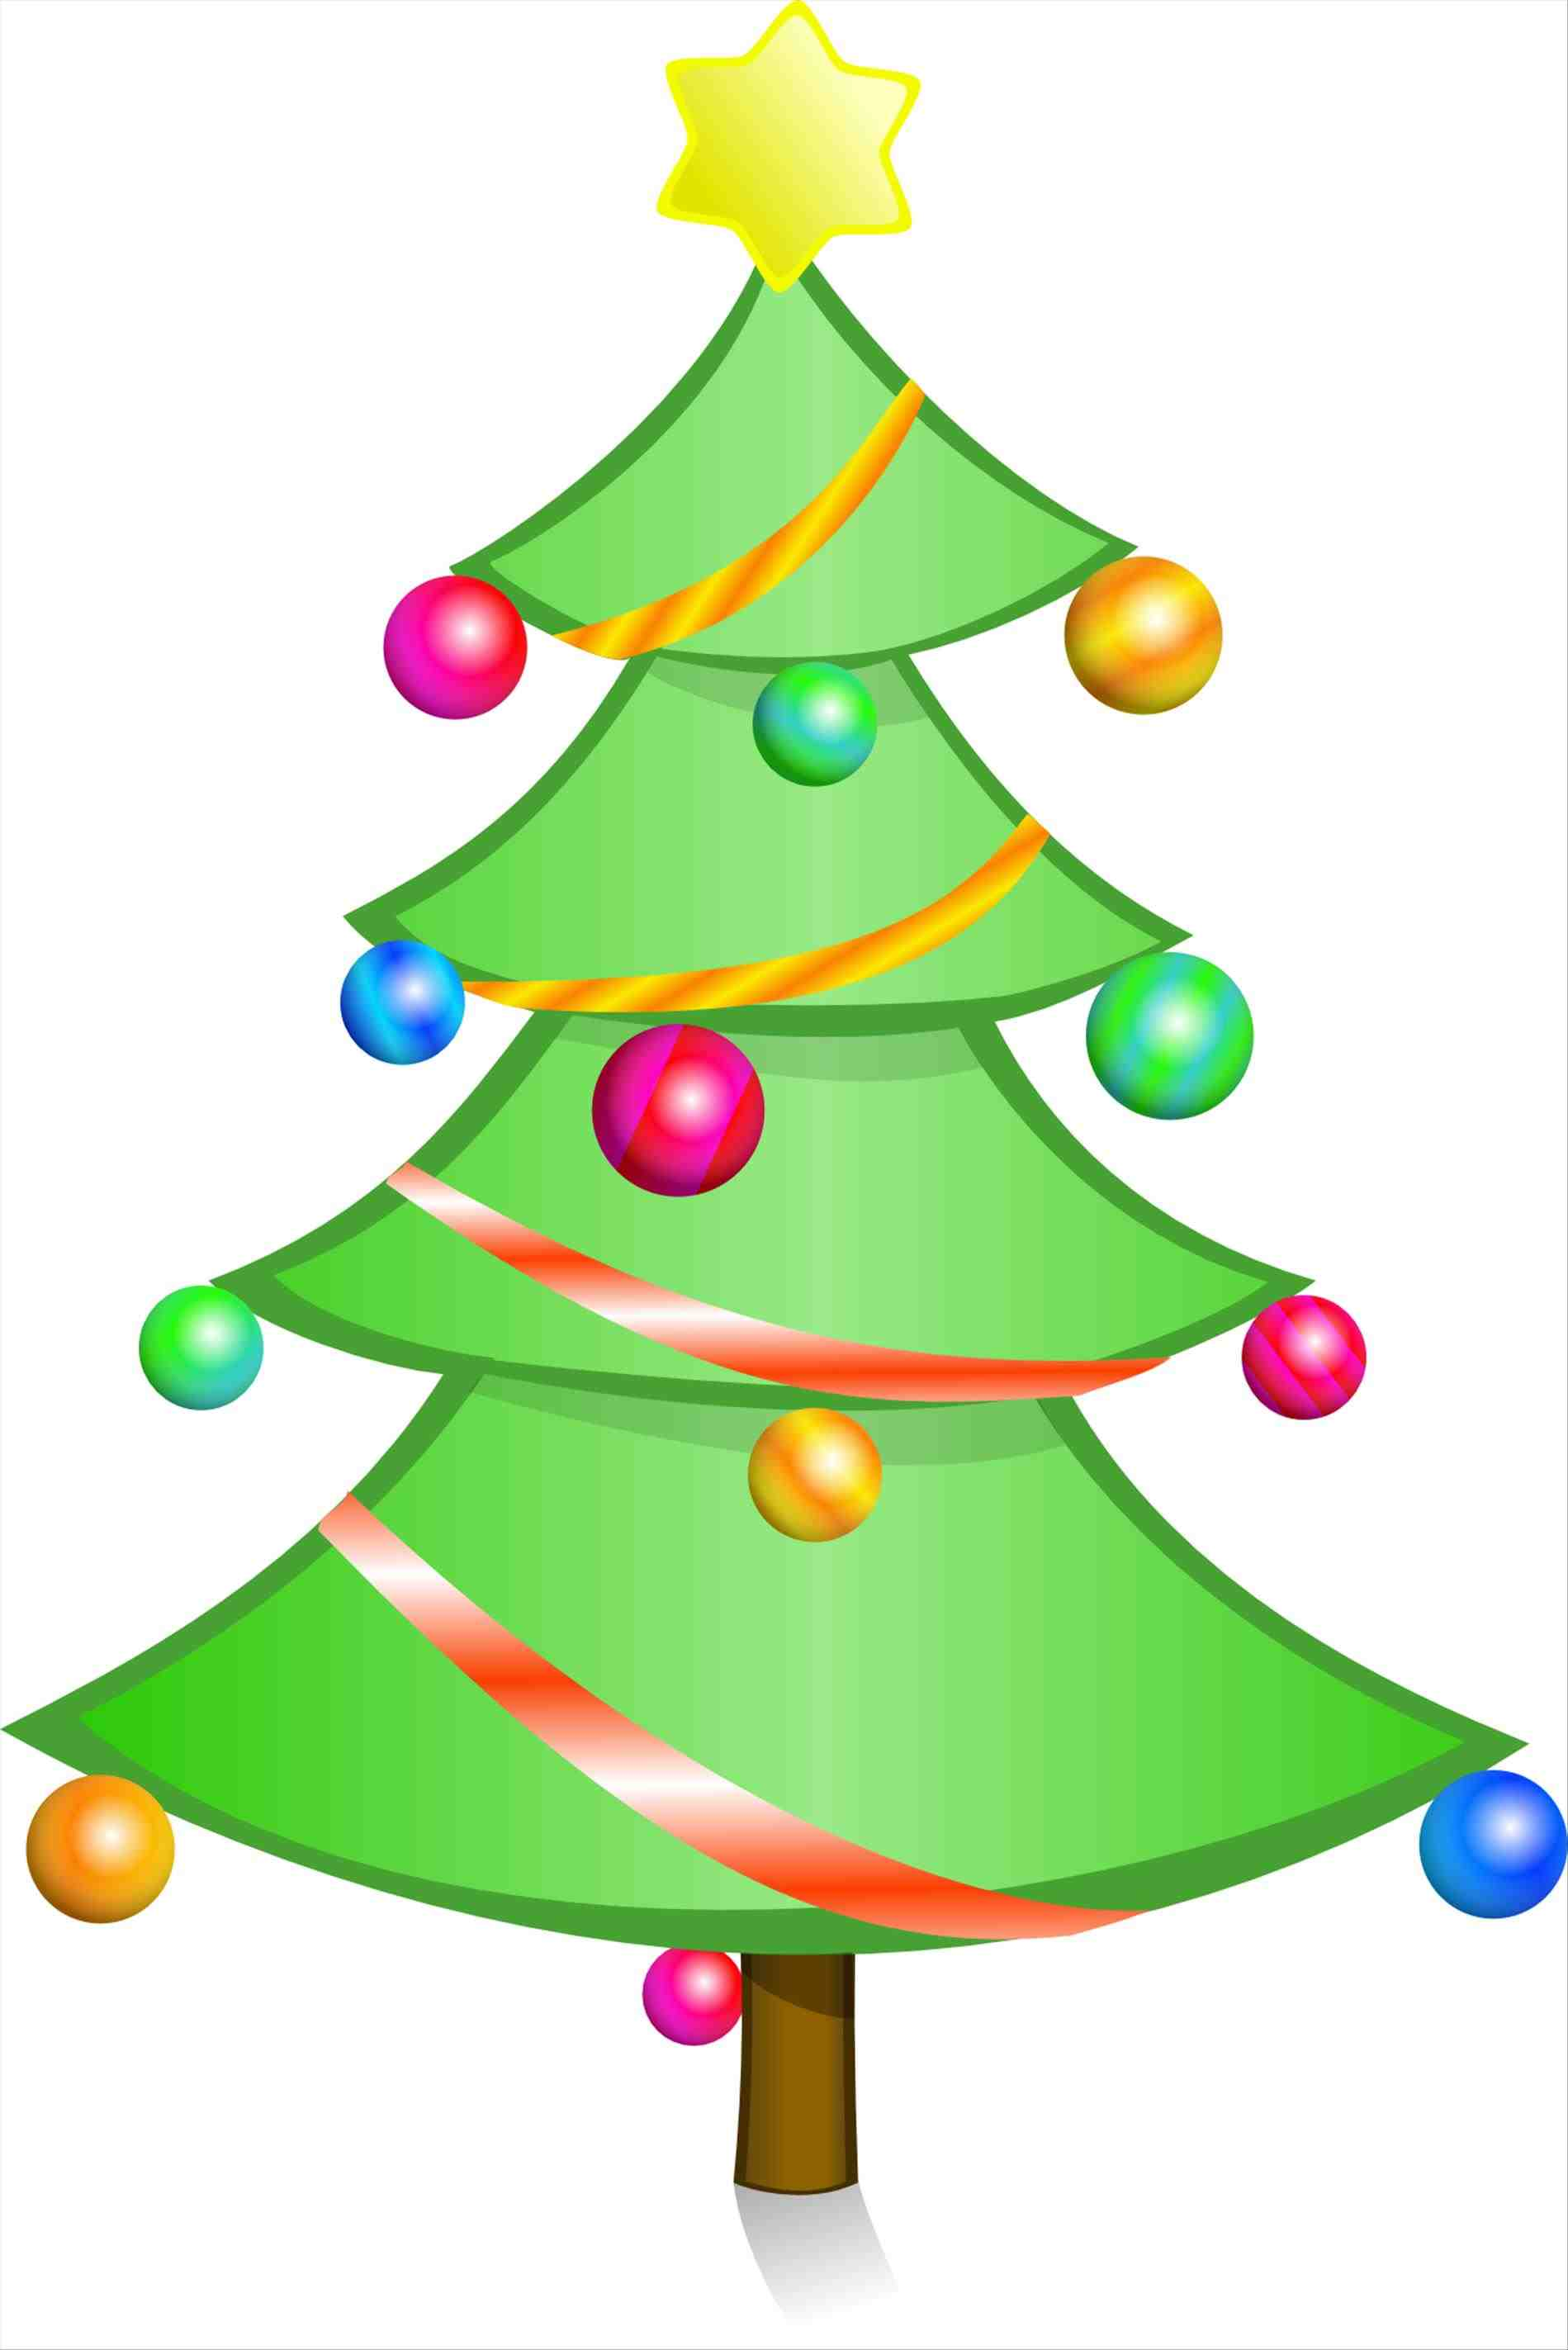 Christmas Tree Transparent Background.Tree Clipart Transparent Background Free Download Best